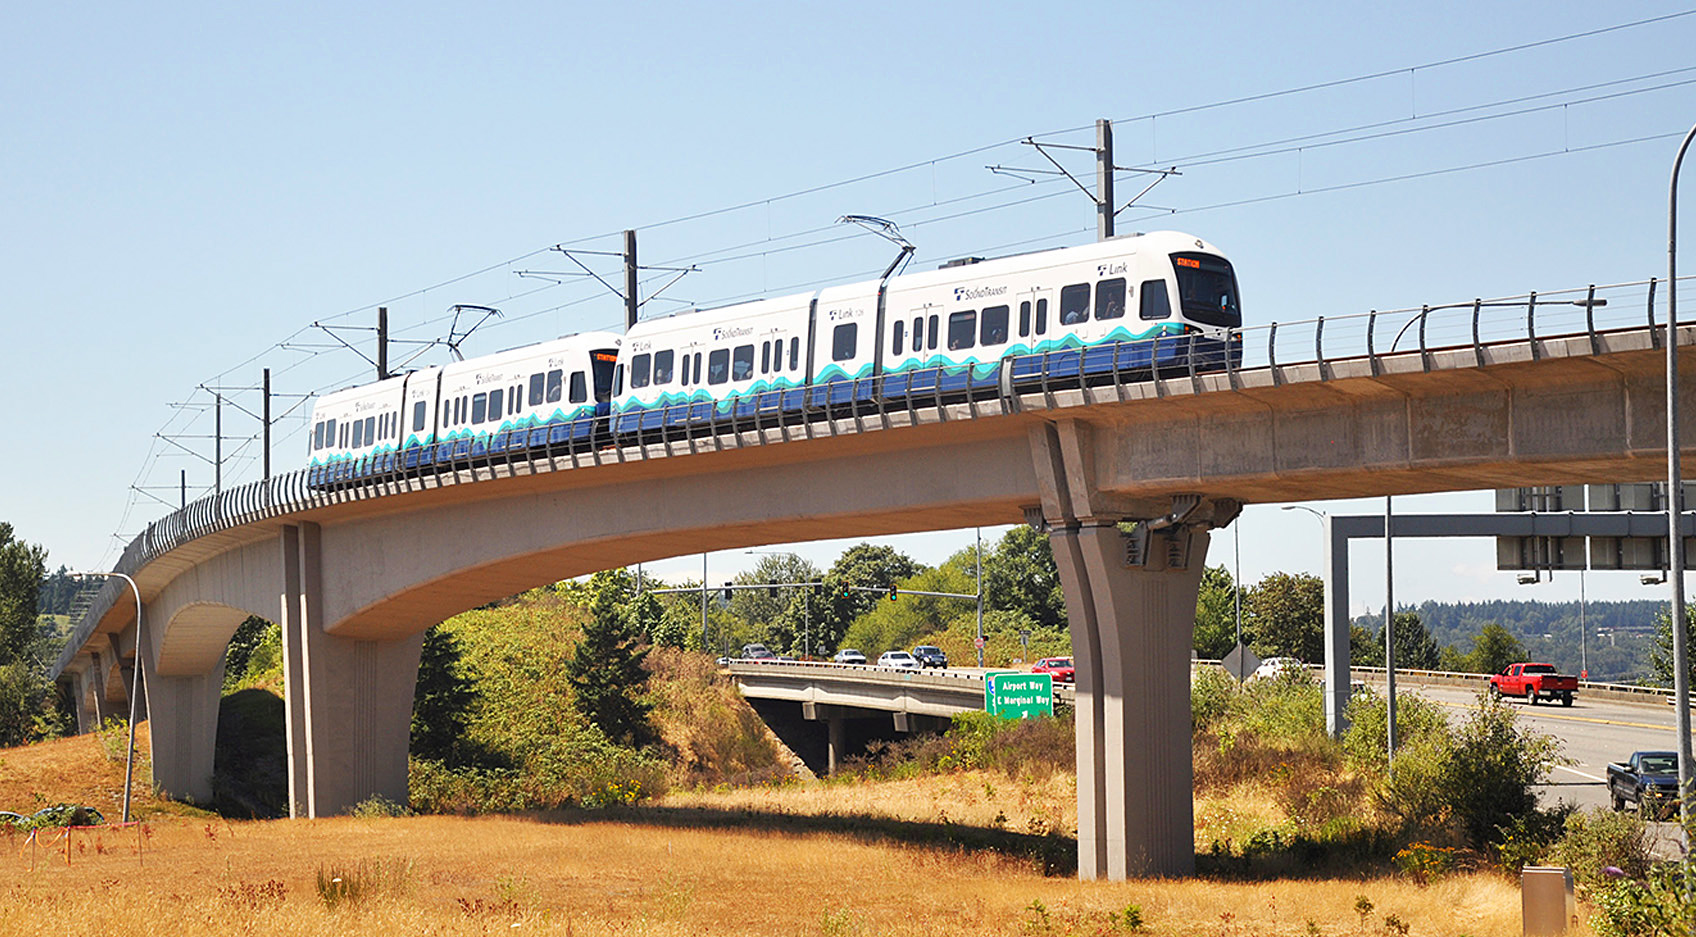 SOUND TRANSIT LINK LIGHT RAIL